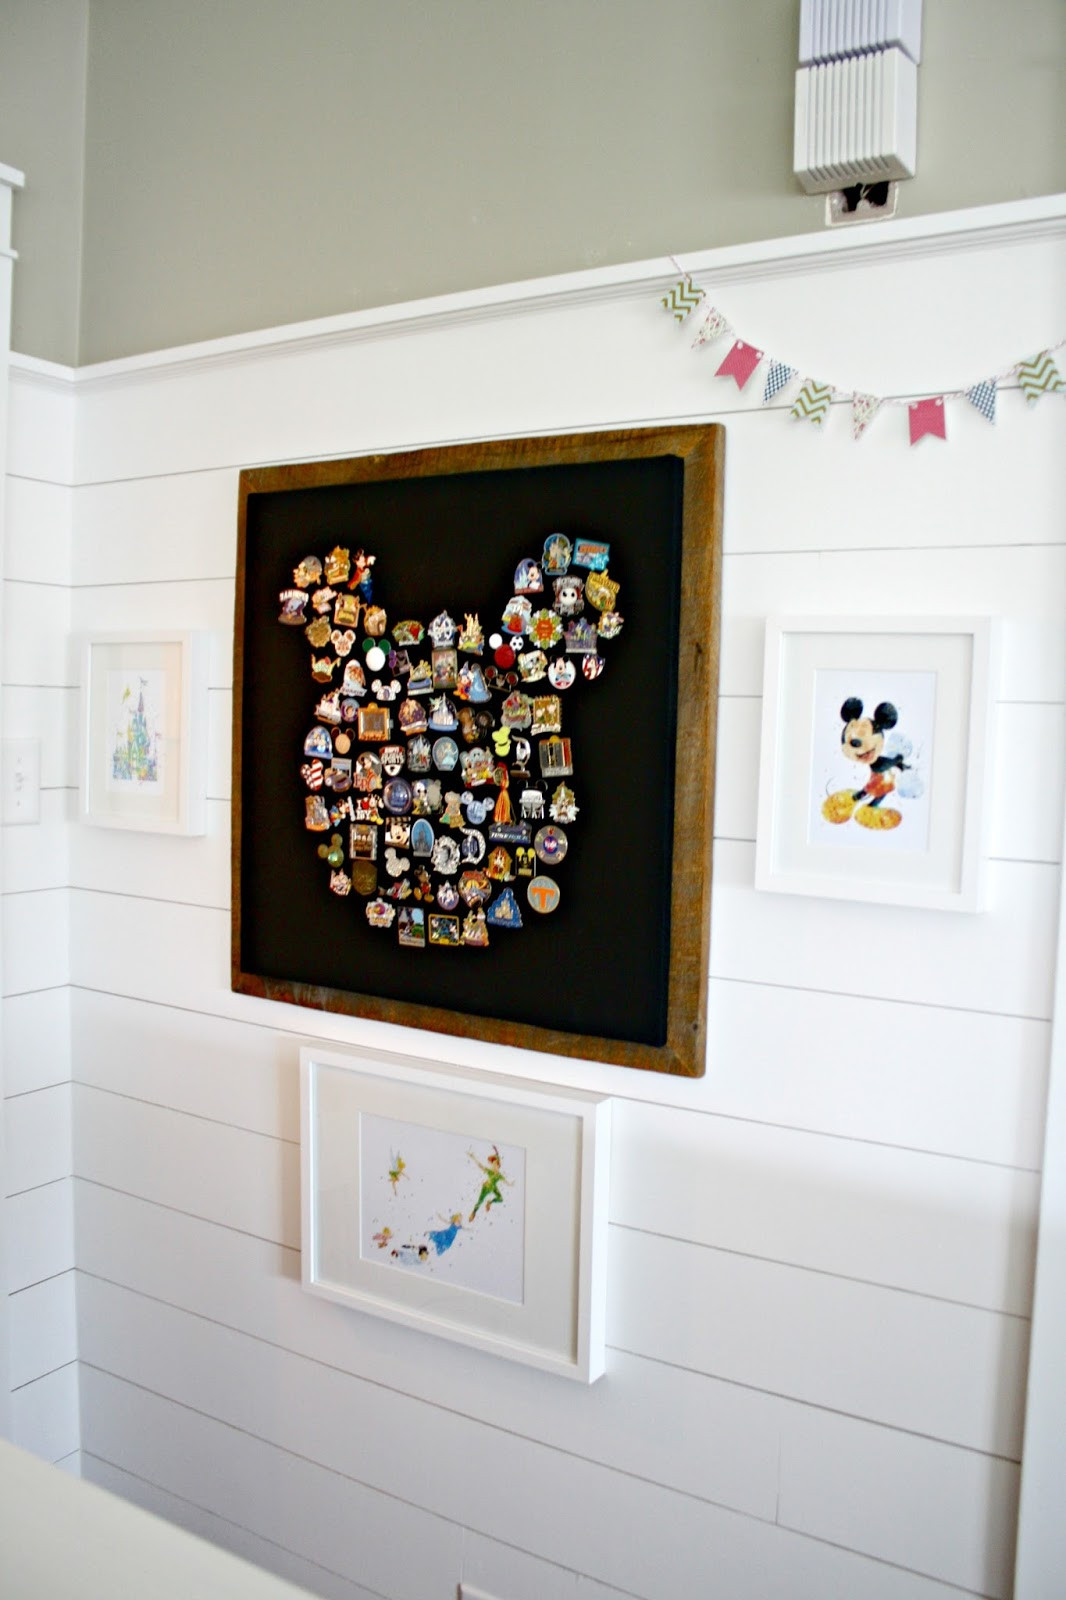 Best ideas about Disney Wall Art . Save or Pin Our fun Disney art wall from Thrifty Decor Chick Now.